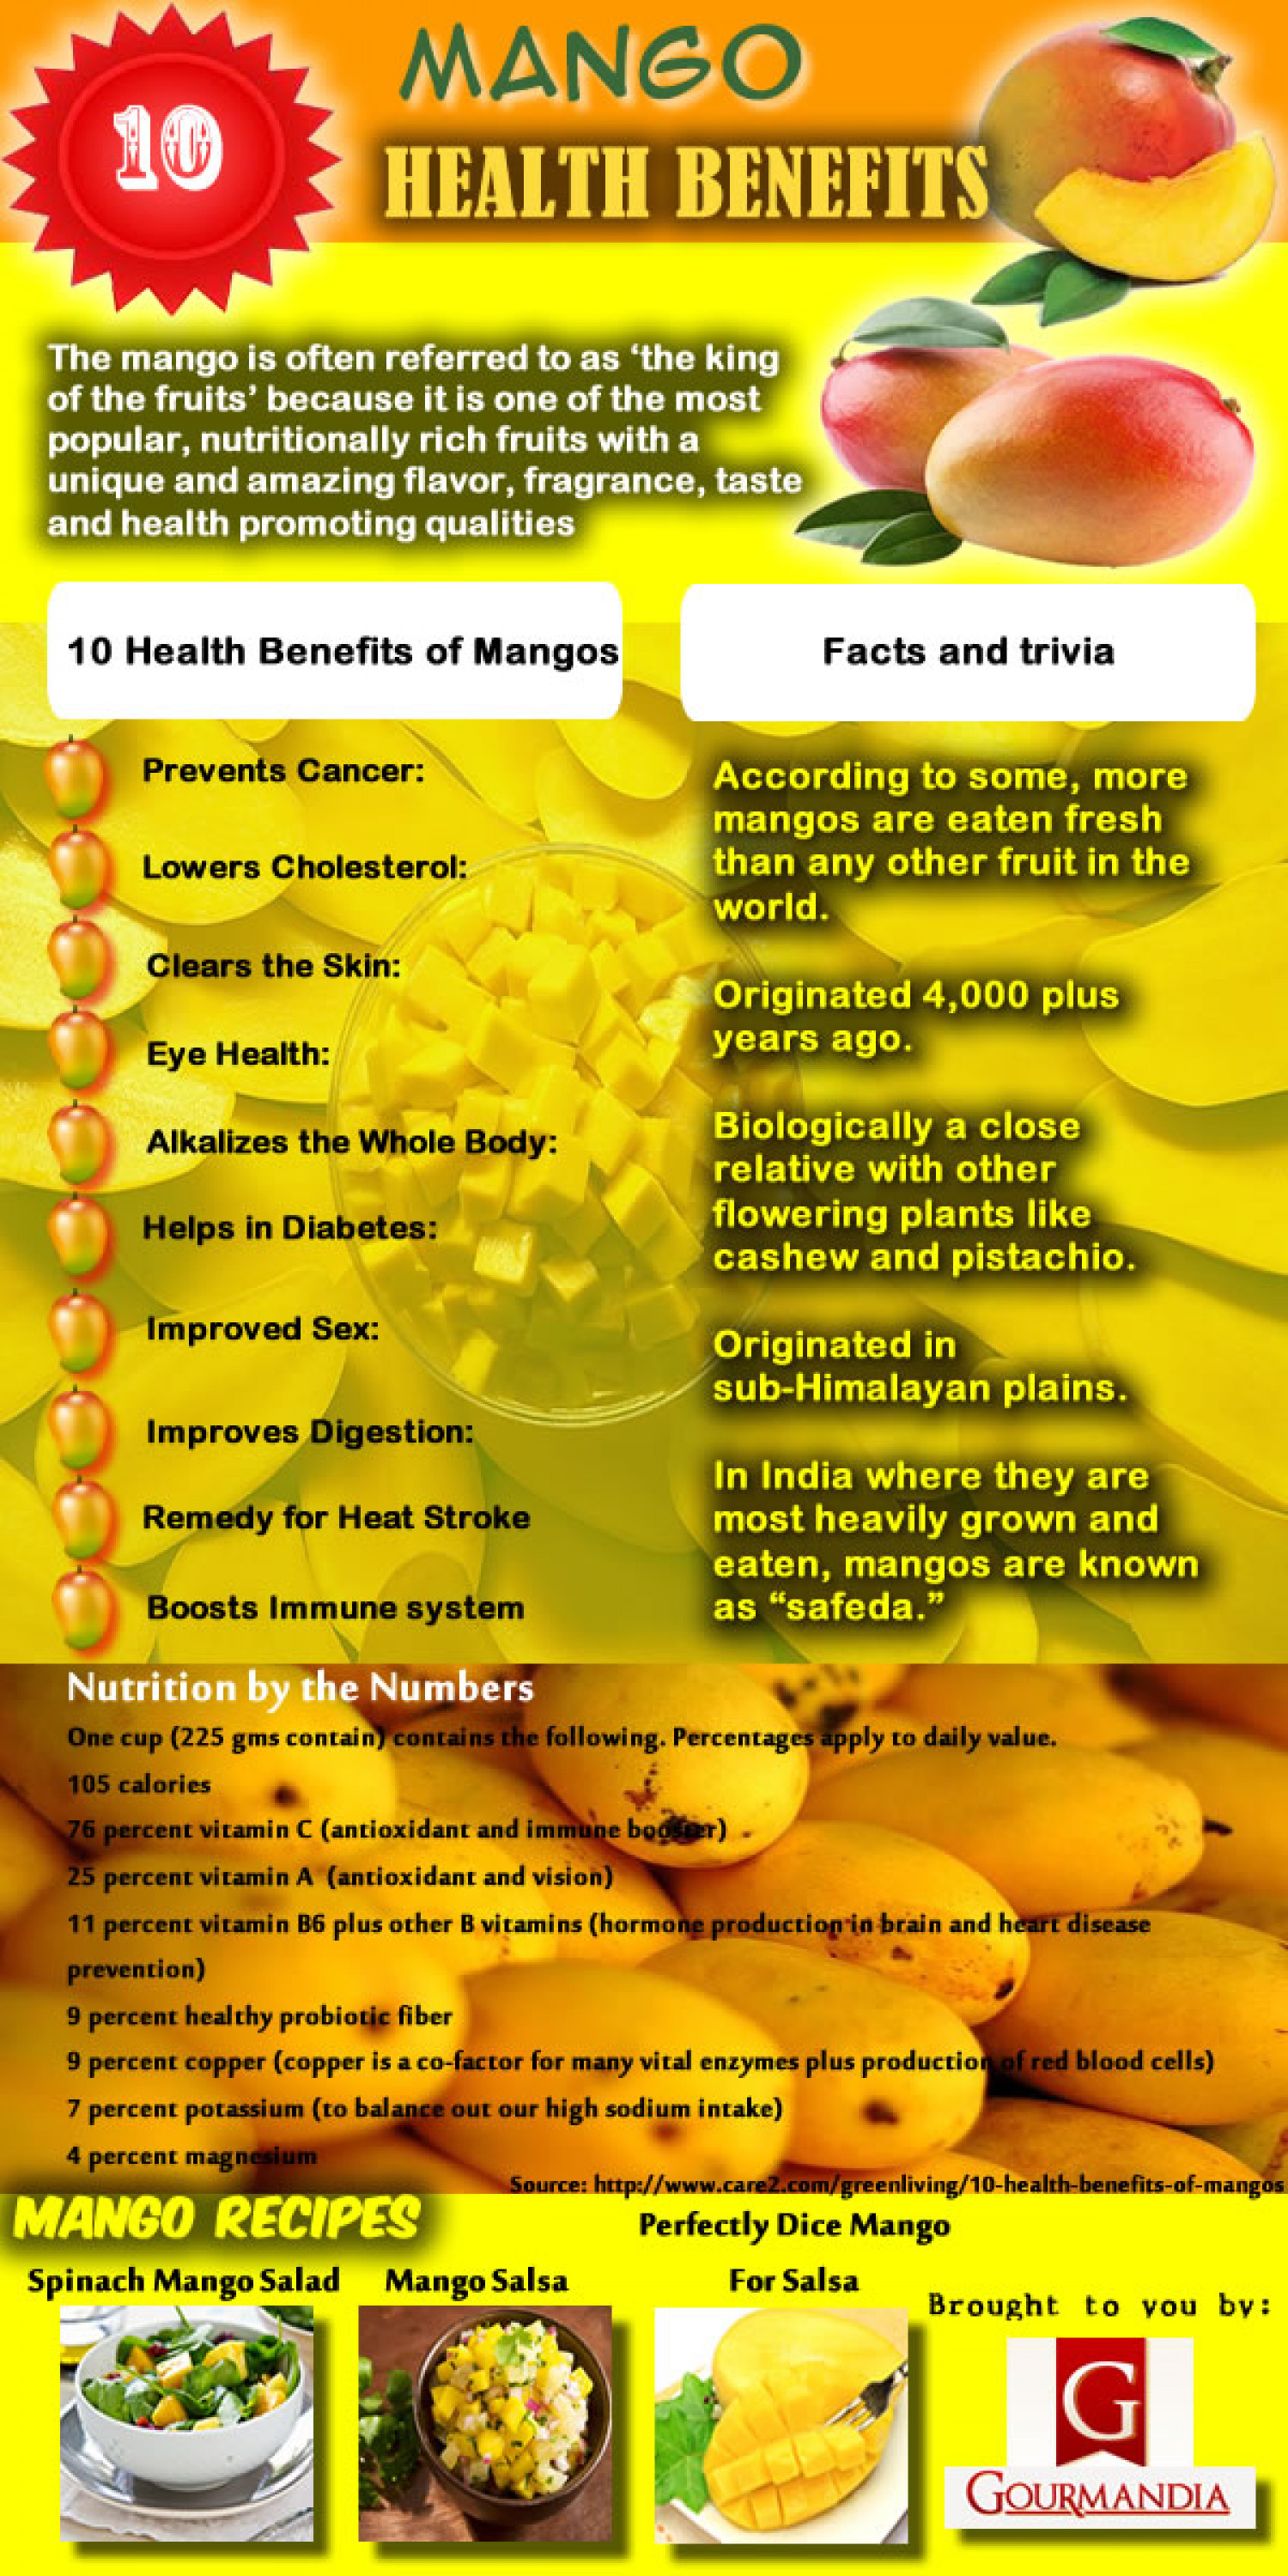 Mango Health Benefits Infographic